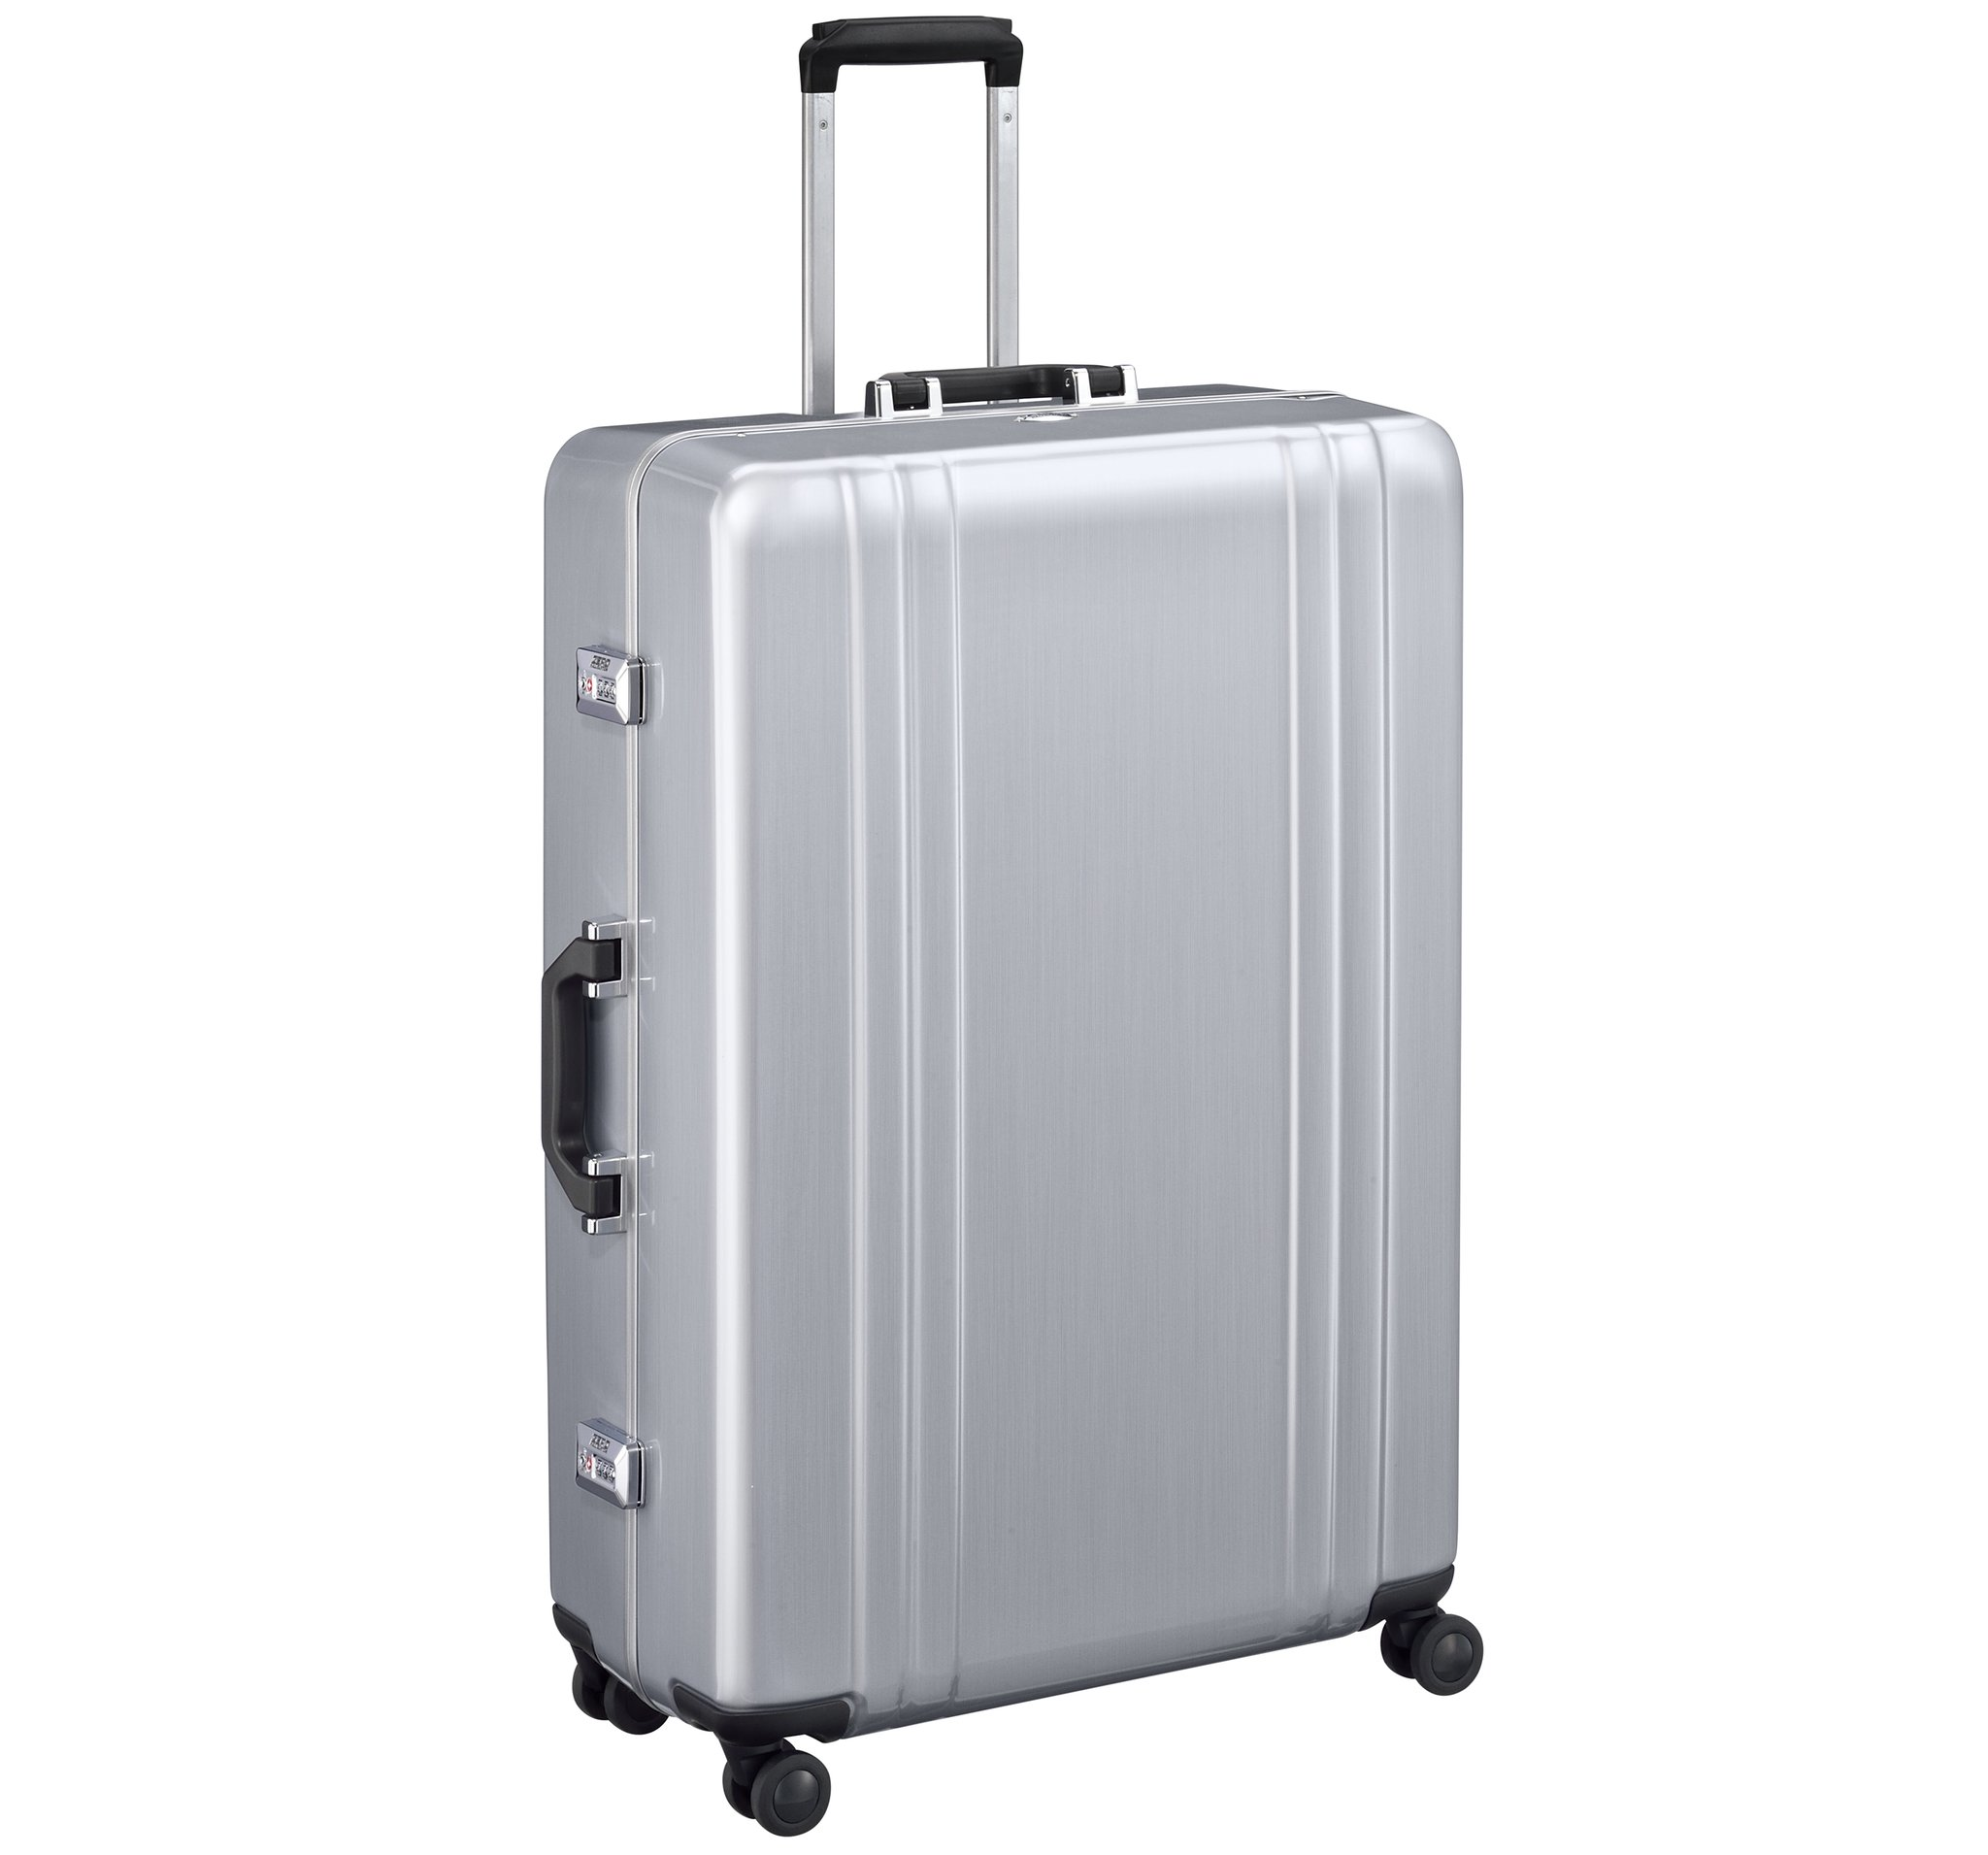 "Classic Polycarbonate 2.0 - 30"" 4-Wheel Travel Case by Zero Halliburton (Color: Silver)"